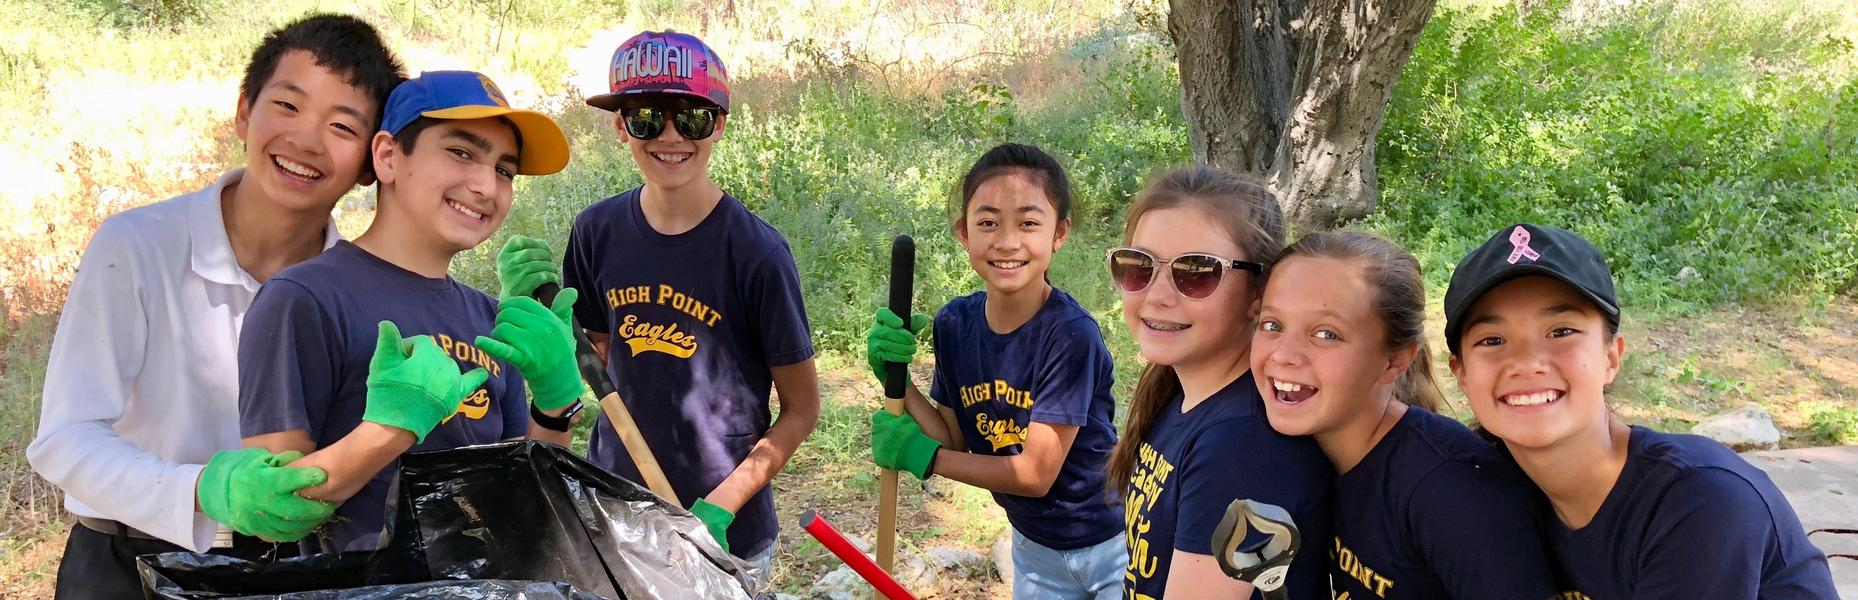 High Point Academy community engagement cleaning up trash.